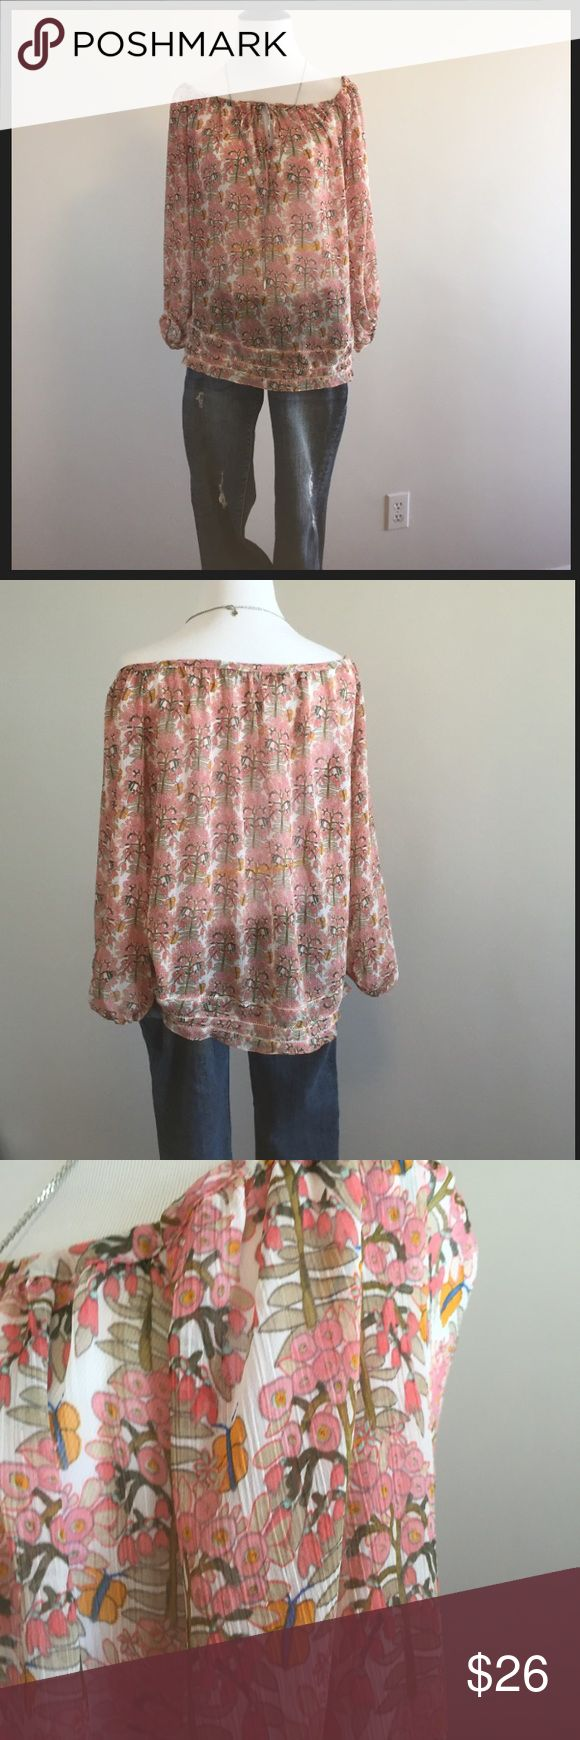 Zara sheer floral print blouse Sheer peasant-style blouse in a pretty floral pattern. It's SHEER so you'll definitely want to wear something underneath. Can be worn on or off the shoulder. Received lots of compliments wearing this, so you likely will, too. Zara Tops Blouses